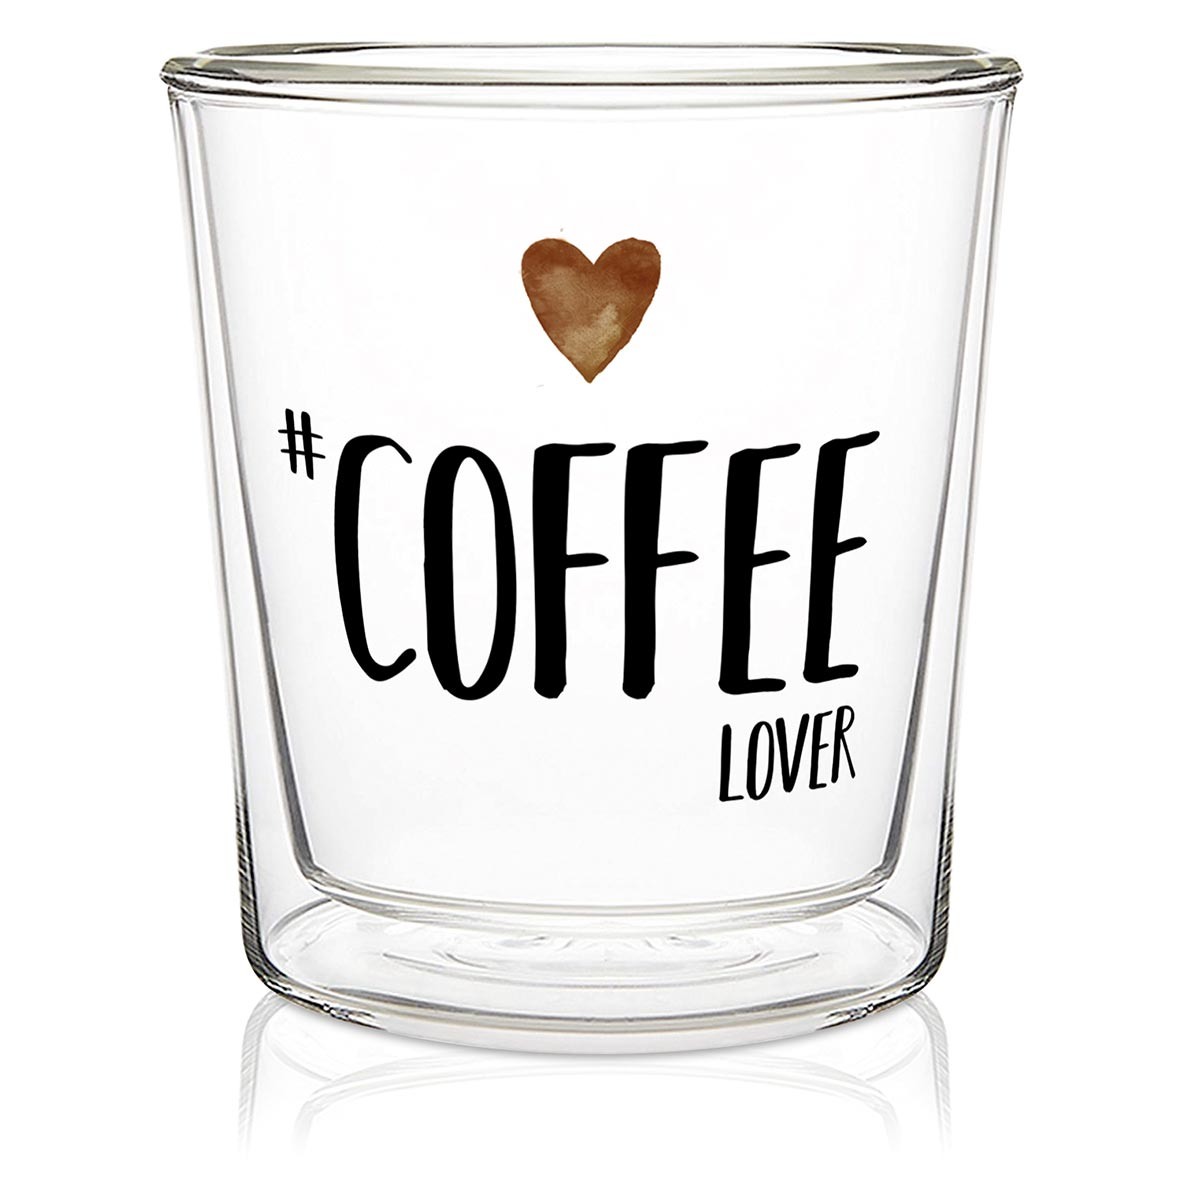 Coffee Lover - Double wall Trend Glas von PPD